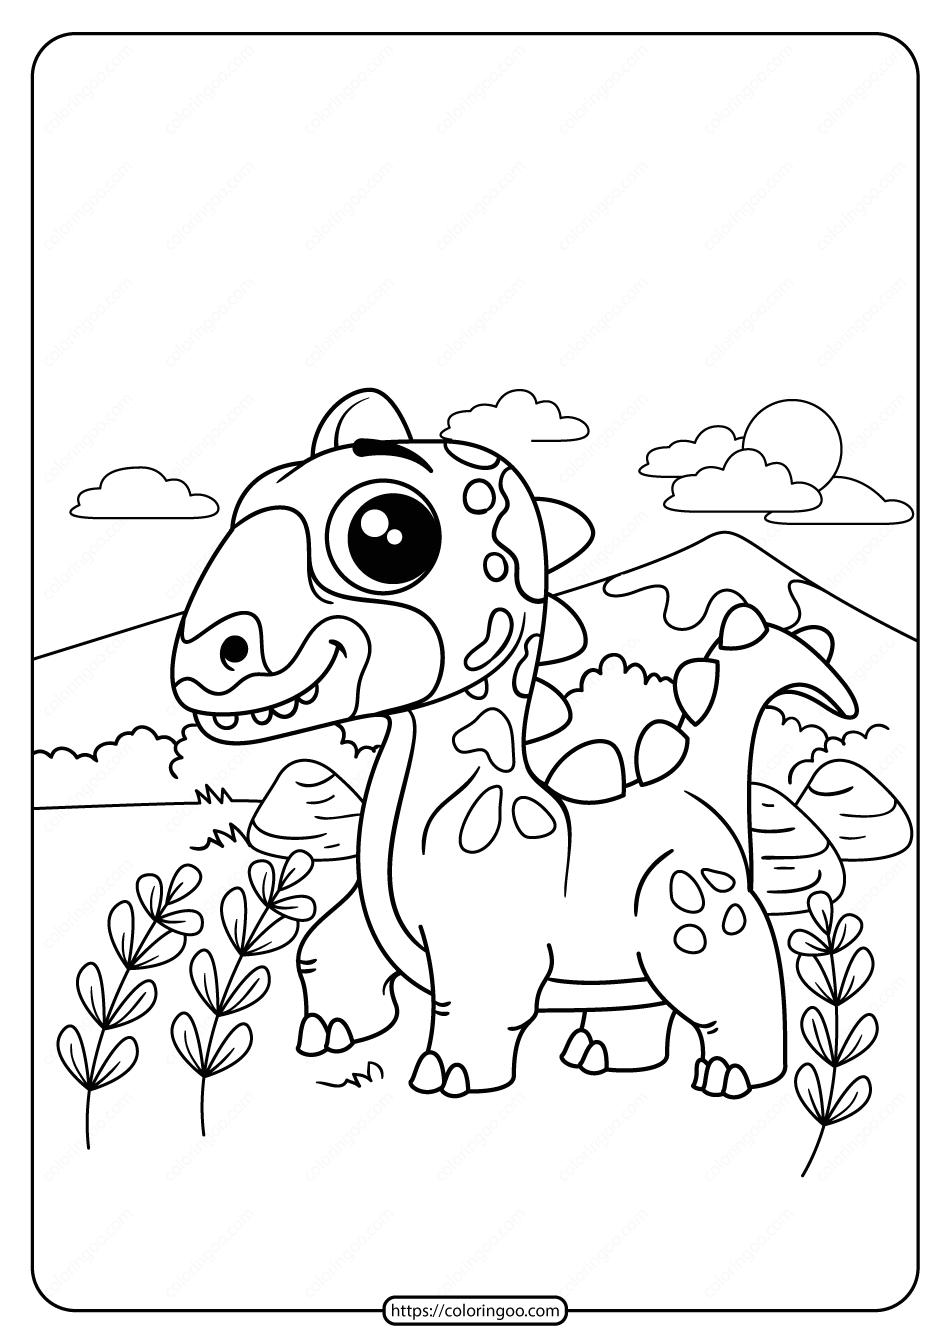 Free Printable Animals Dinosaur Coloring Pages 05